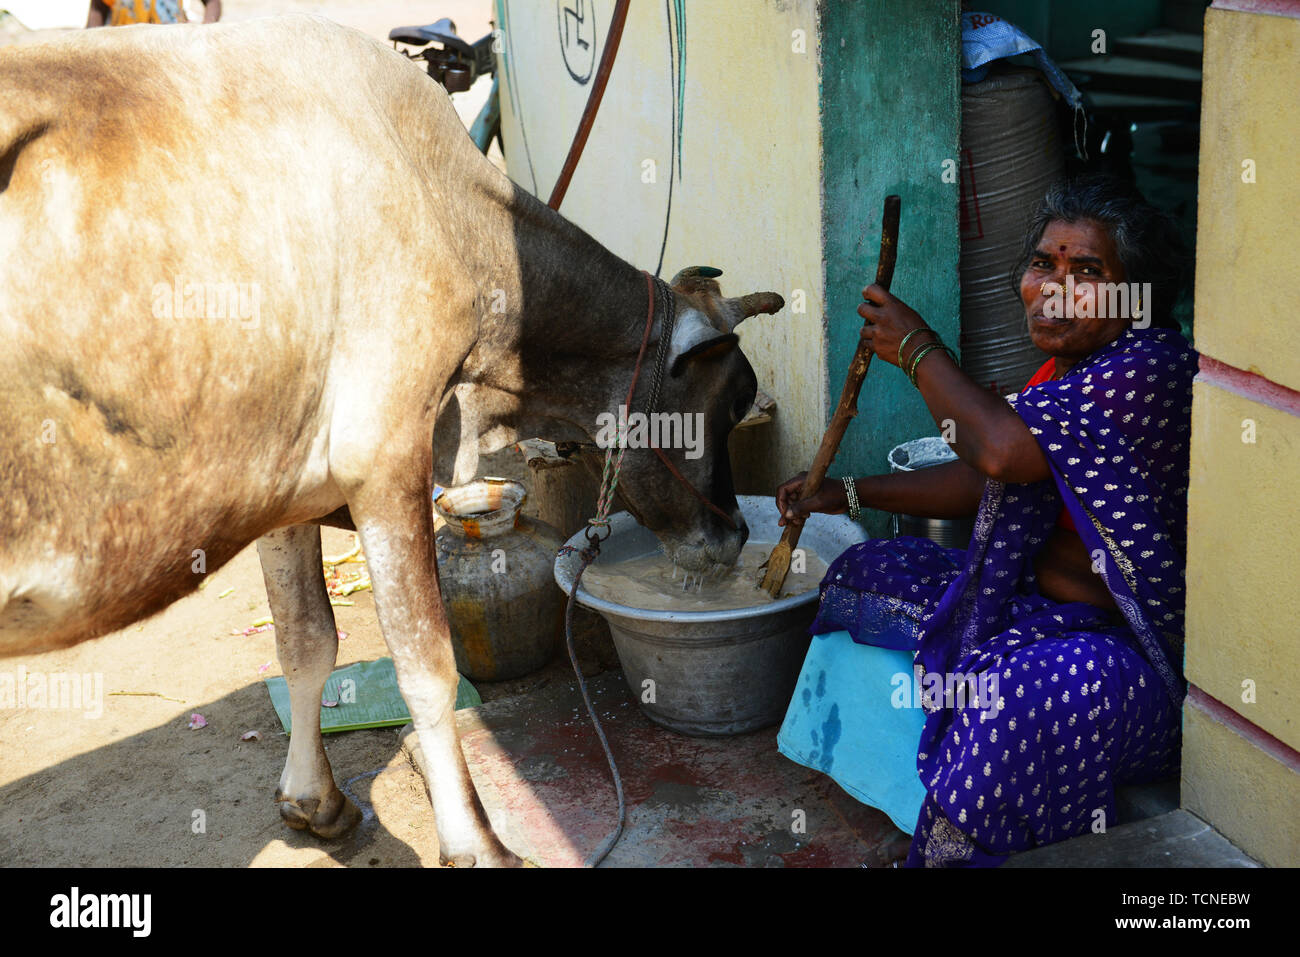 Tamil Woman Stock Photos & Tamil Woman Stock Images - Alamy